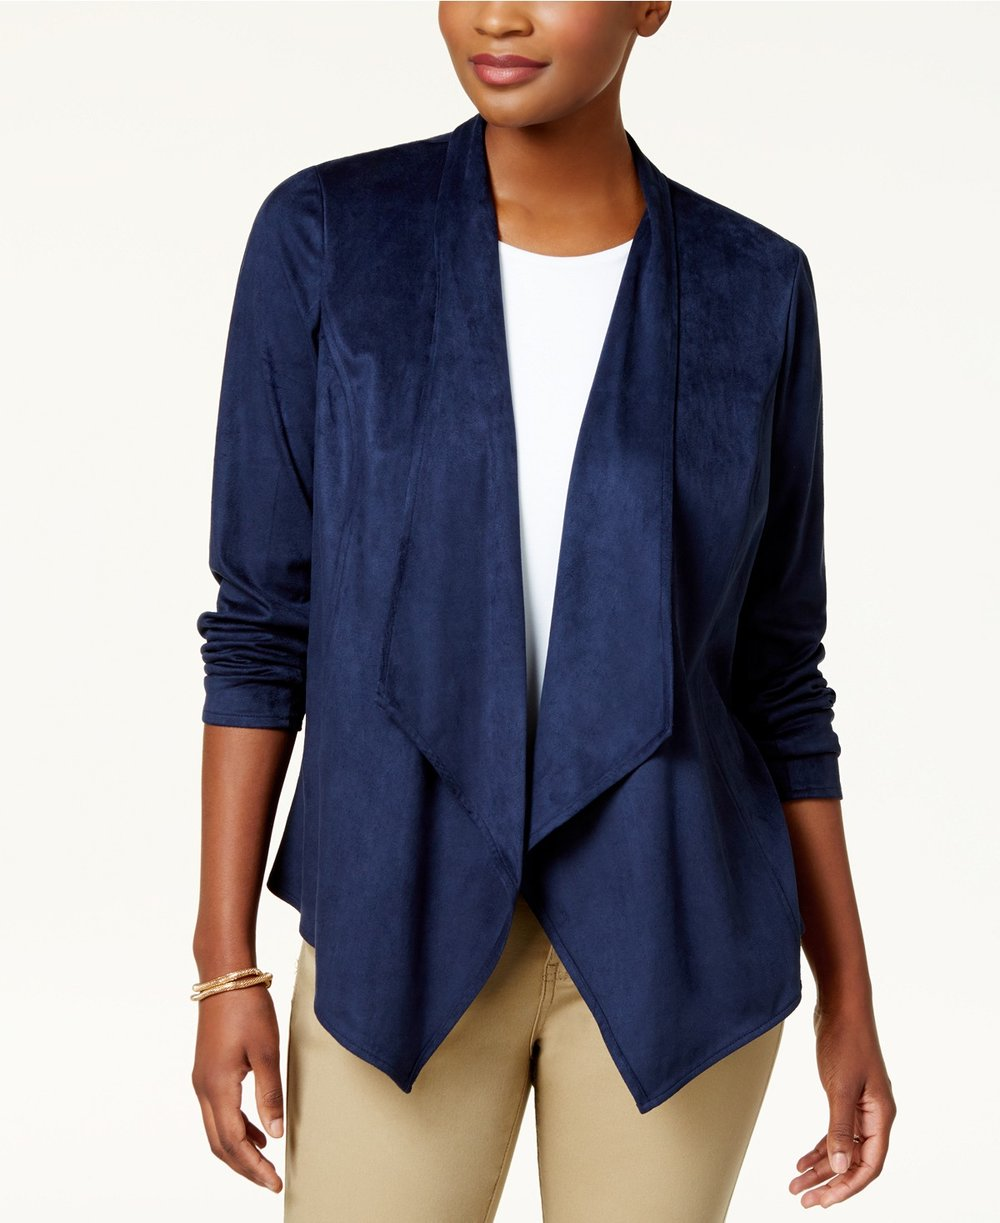 JM Collection  Petite Open-Front Moleskin Jacket. Available in two colors. Macy's. Was: $69. Now: $34.